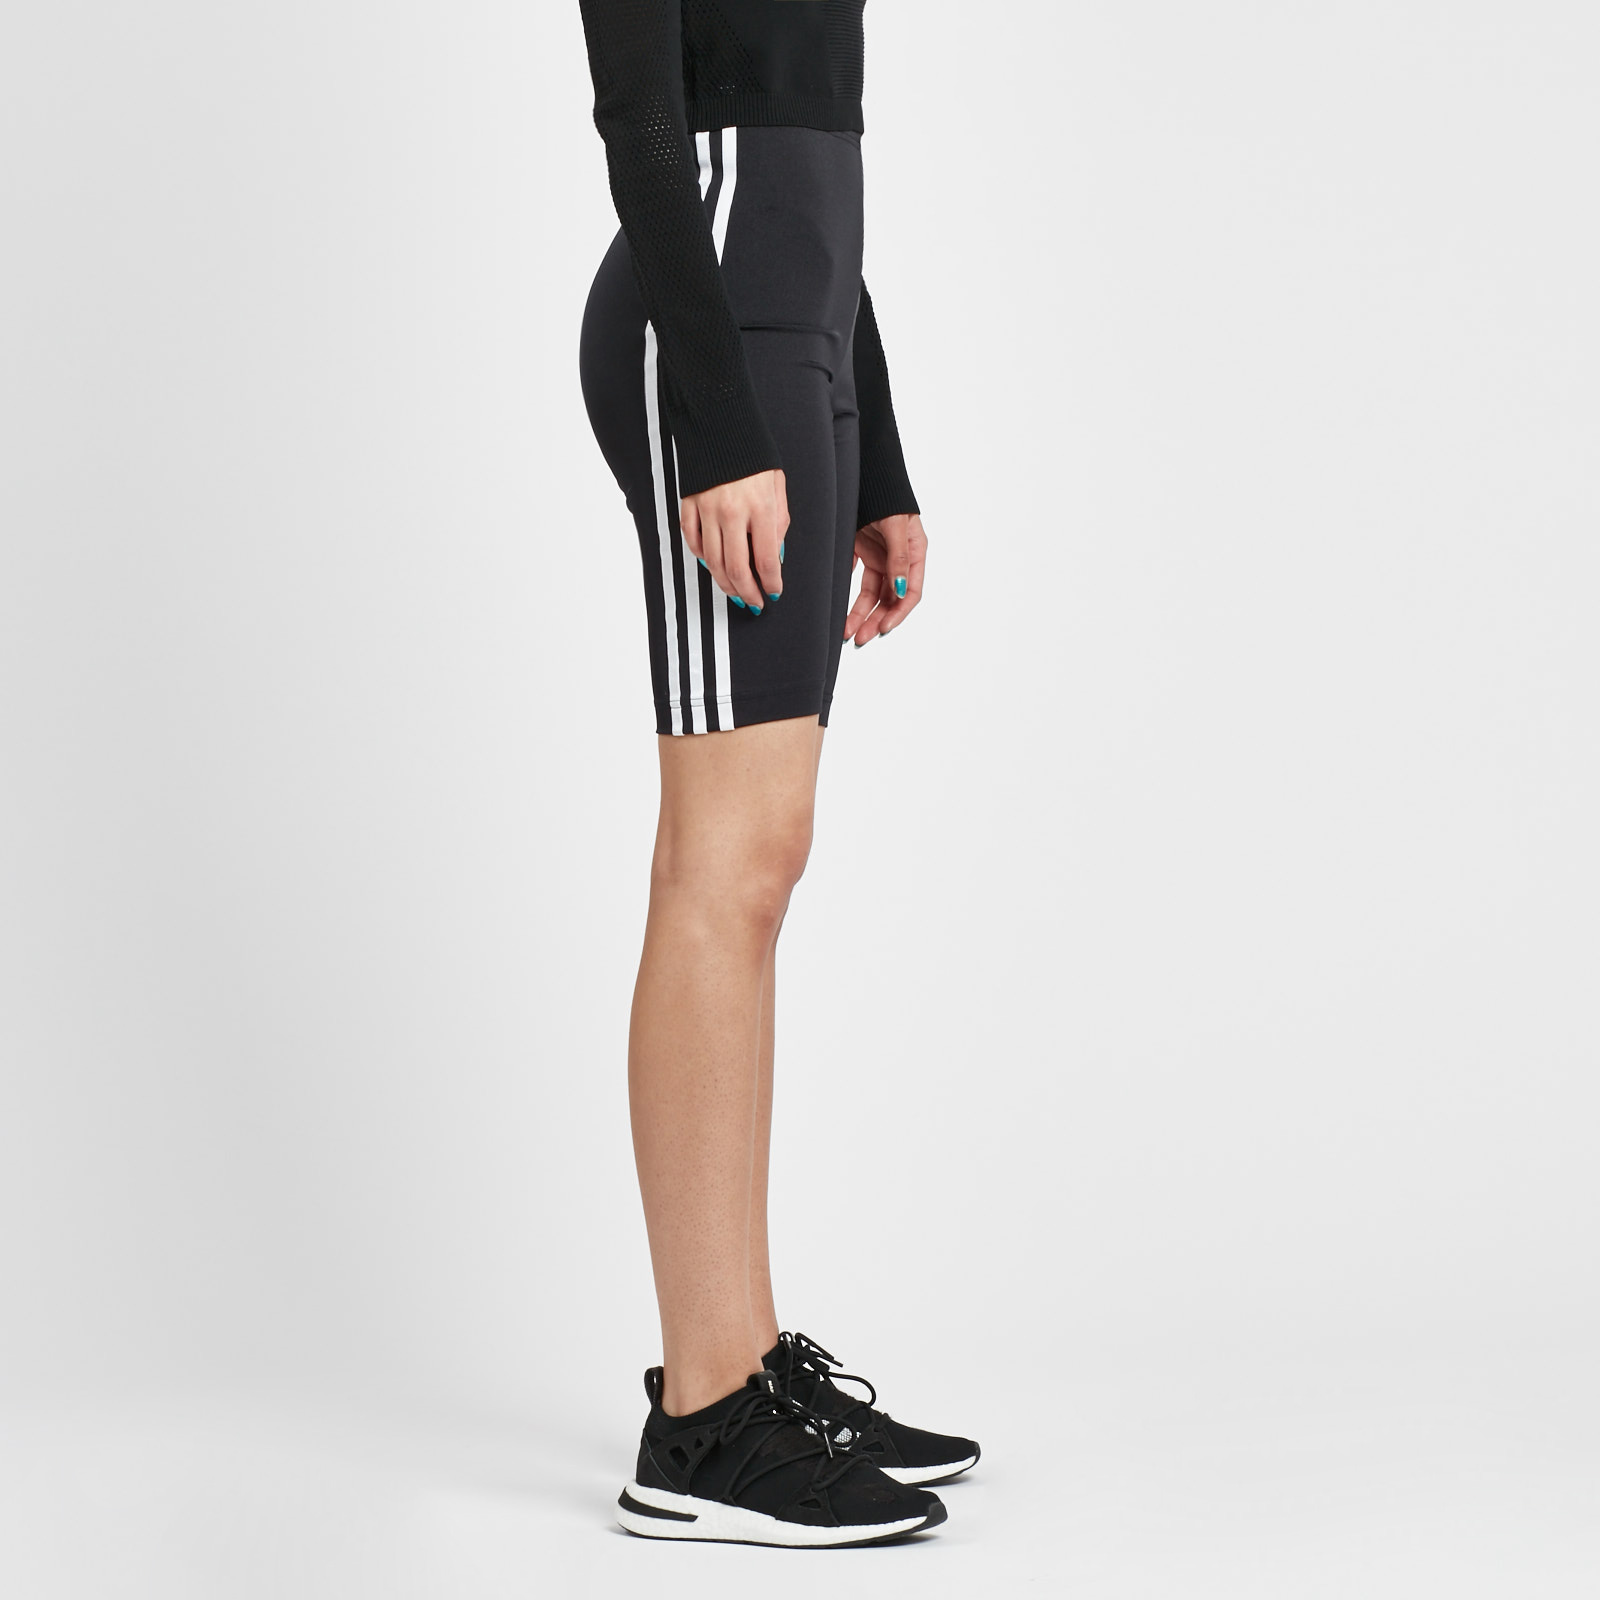 3bf00ab80e5 adidas Bike Shorts x Naked - Cy4792 - Sneakersnstuff | sneakers ...